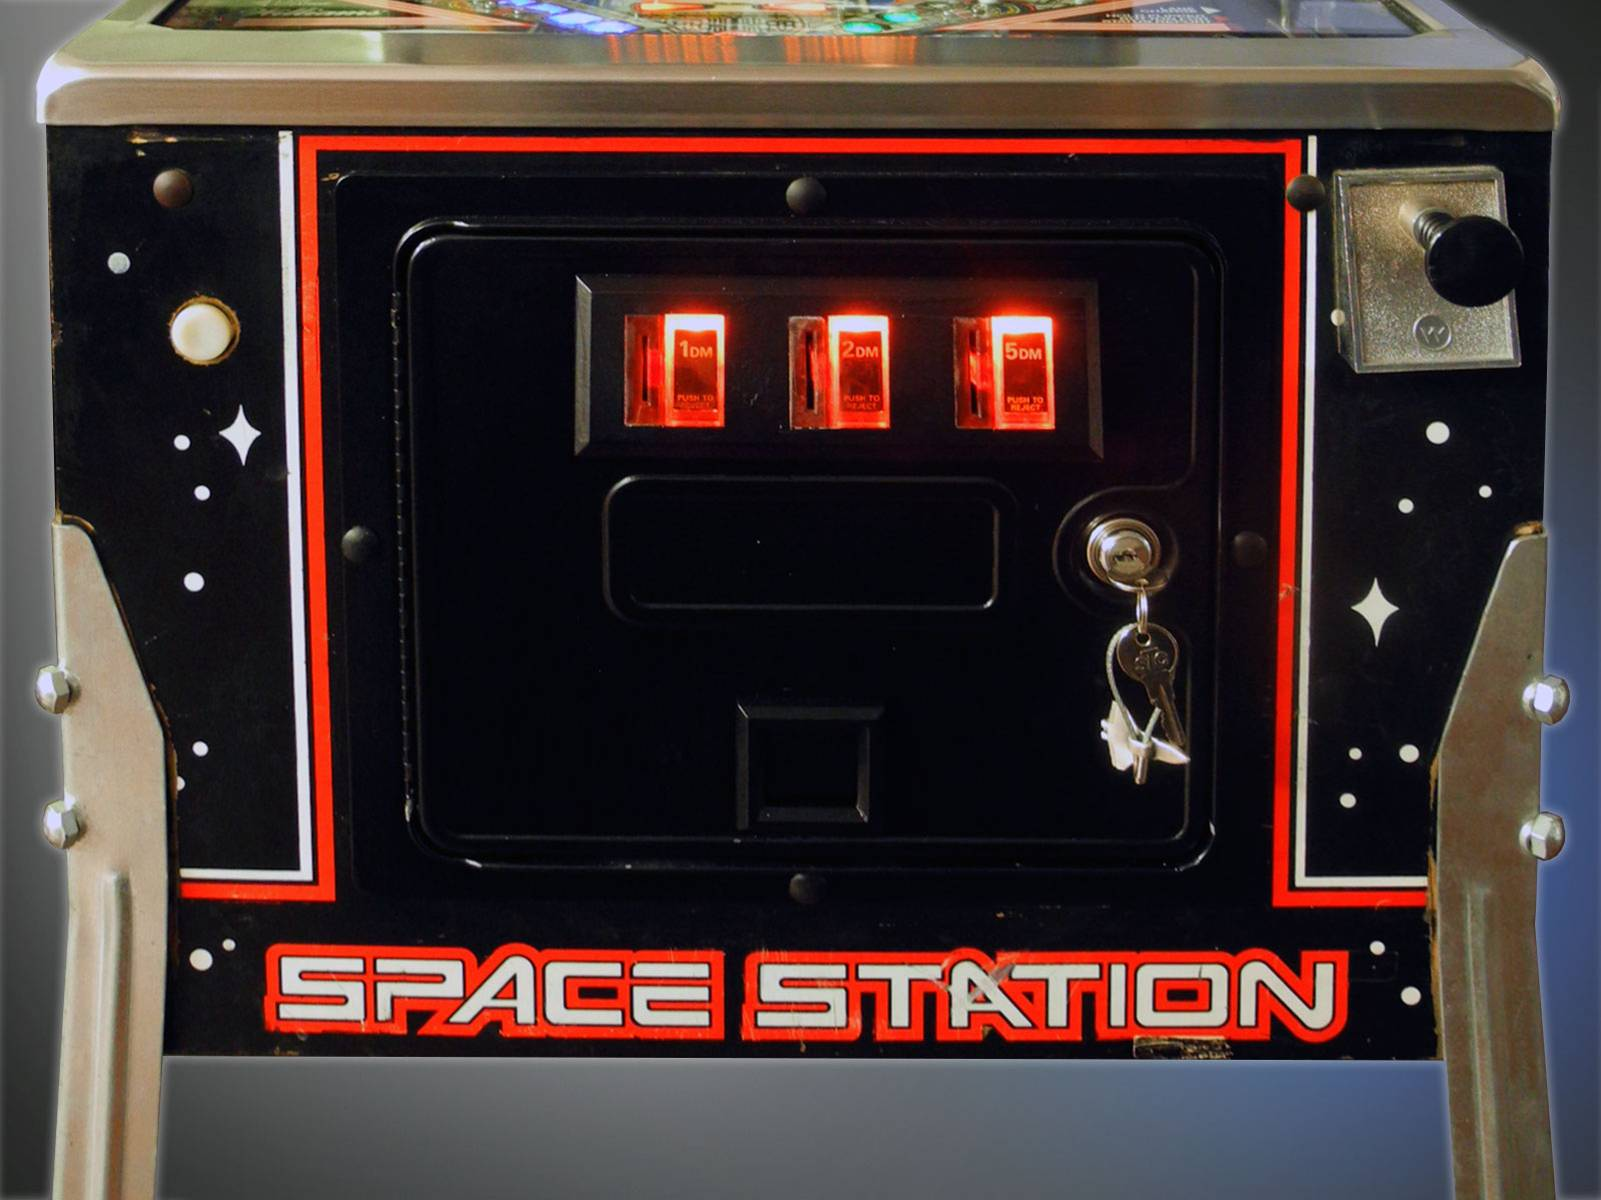 SpaceStation03.jpg